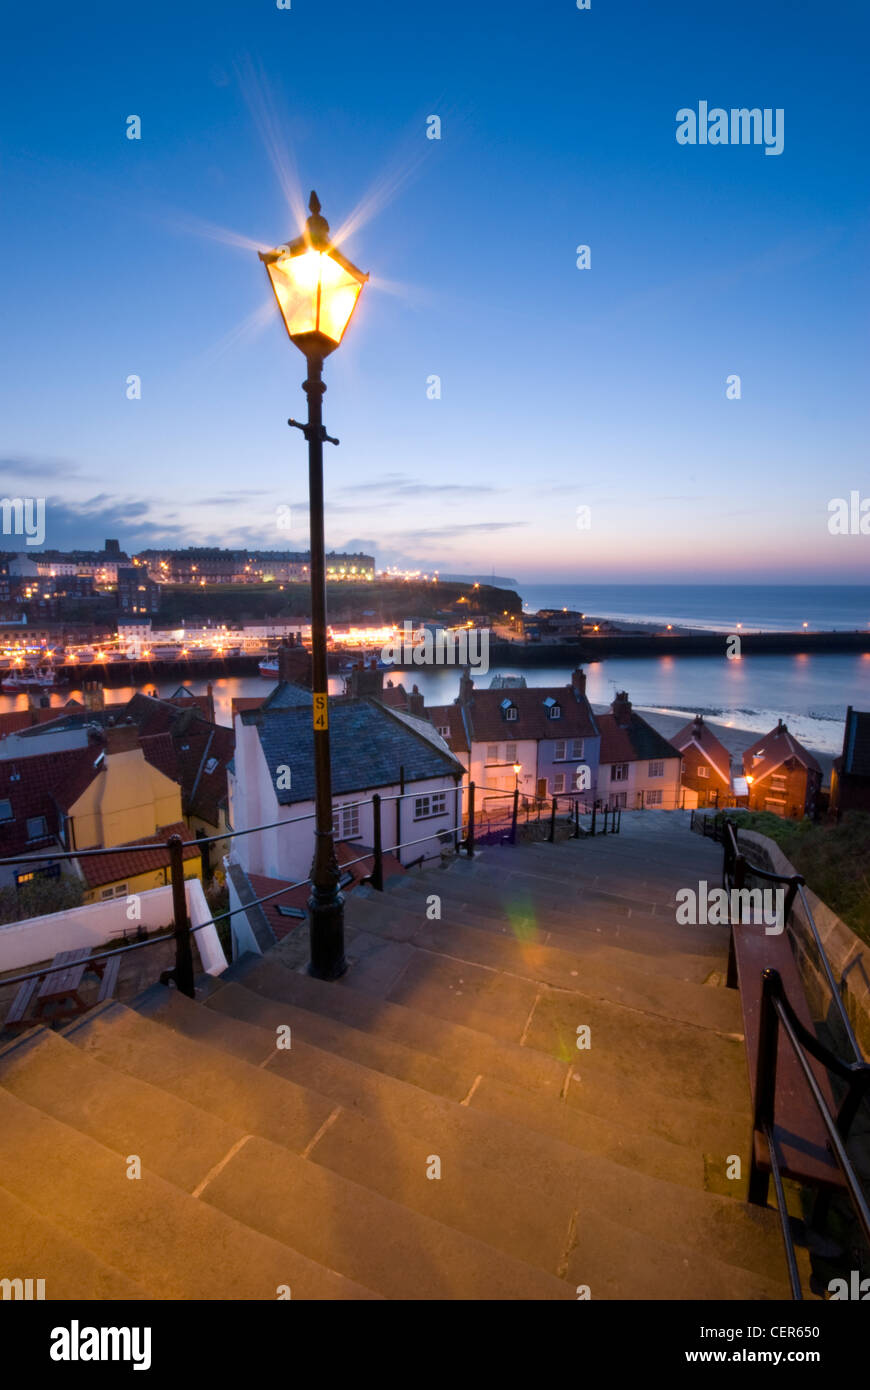 A traditional street light illuminates the 199 steps leading down towards the old town of Whitby. - Stock Image